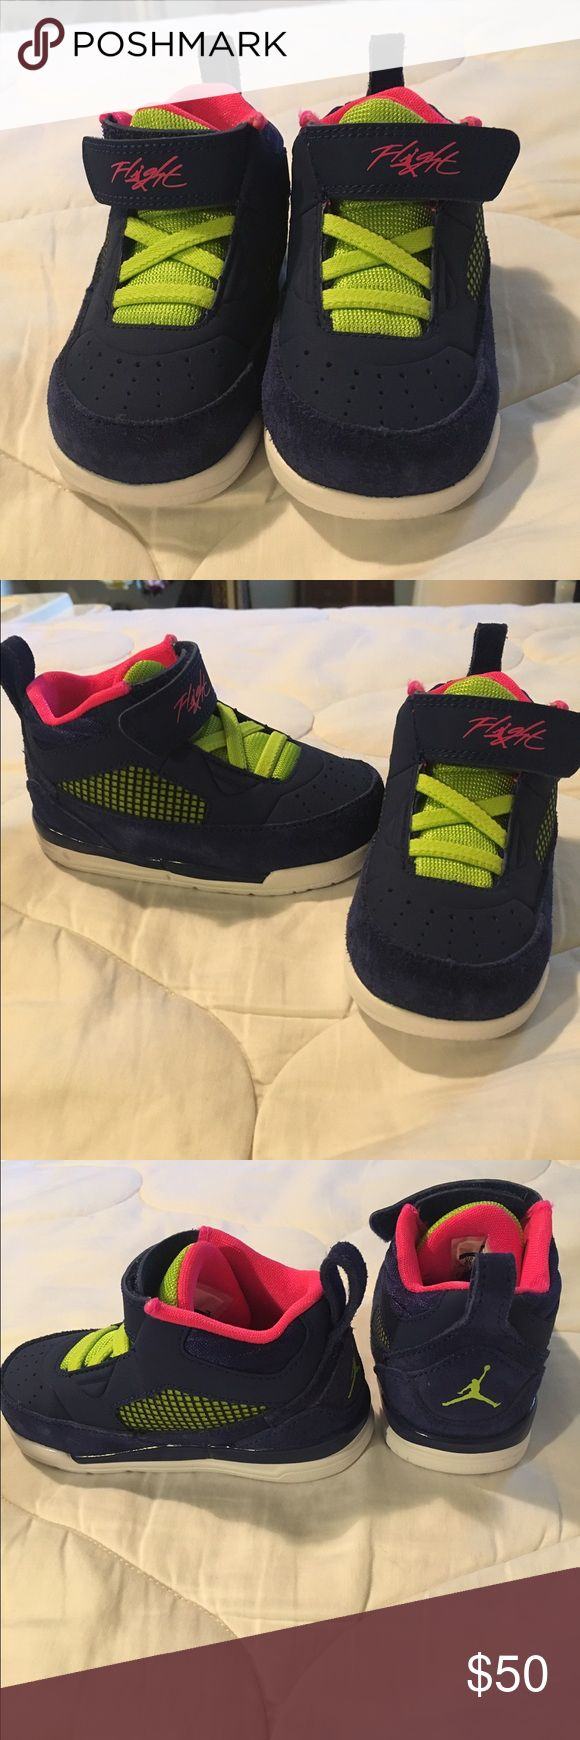 Brand new kids Jordan Flight 9.5 size 6 Brand new shoes from Jordan Flight 9.5 size 6. They are dark blue with accents of pink and green. They have never been worn and come with the box. Jordan Shoes Sneakers